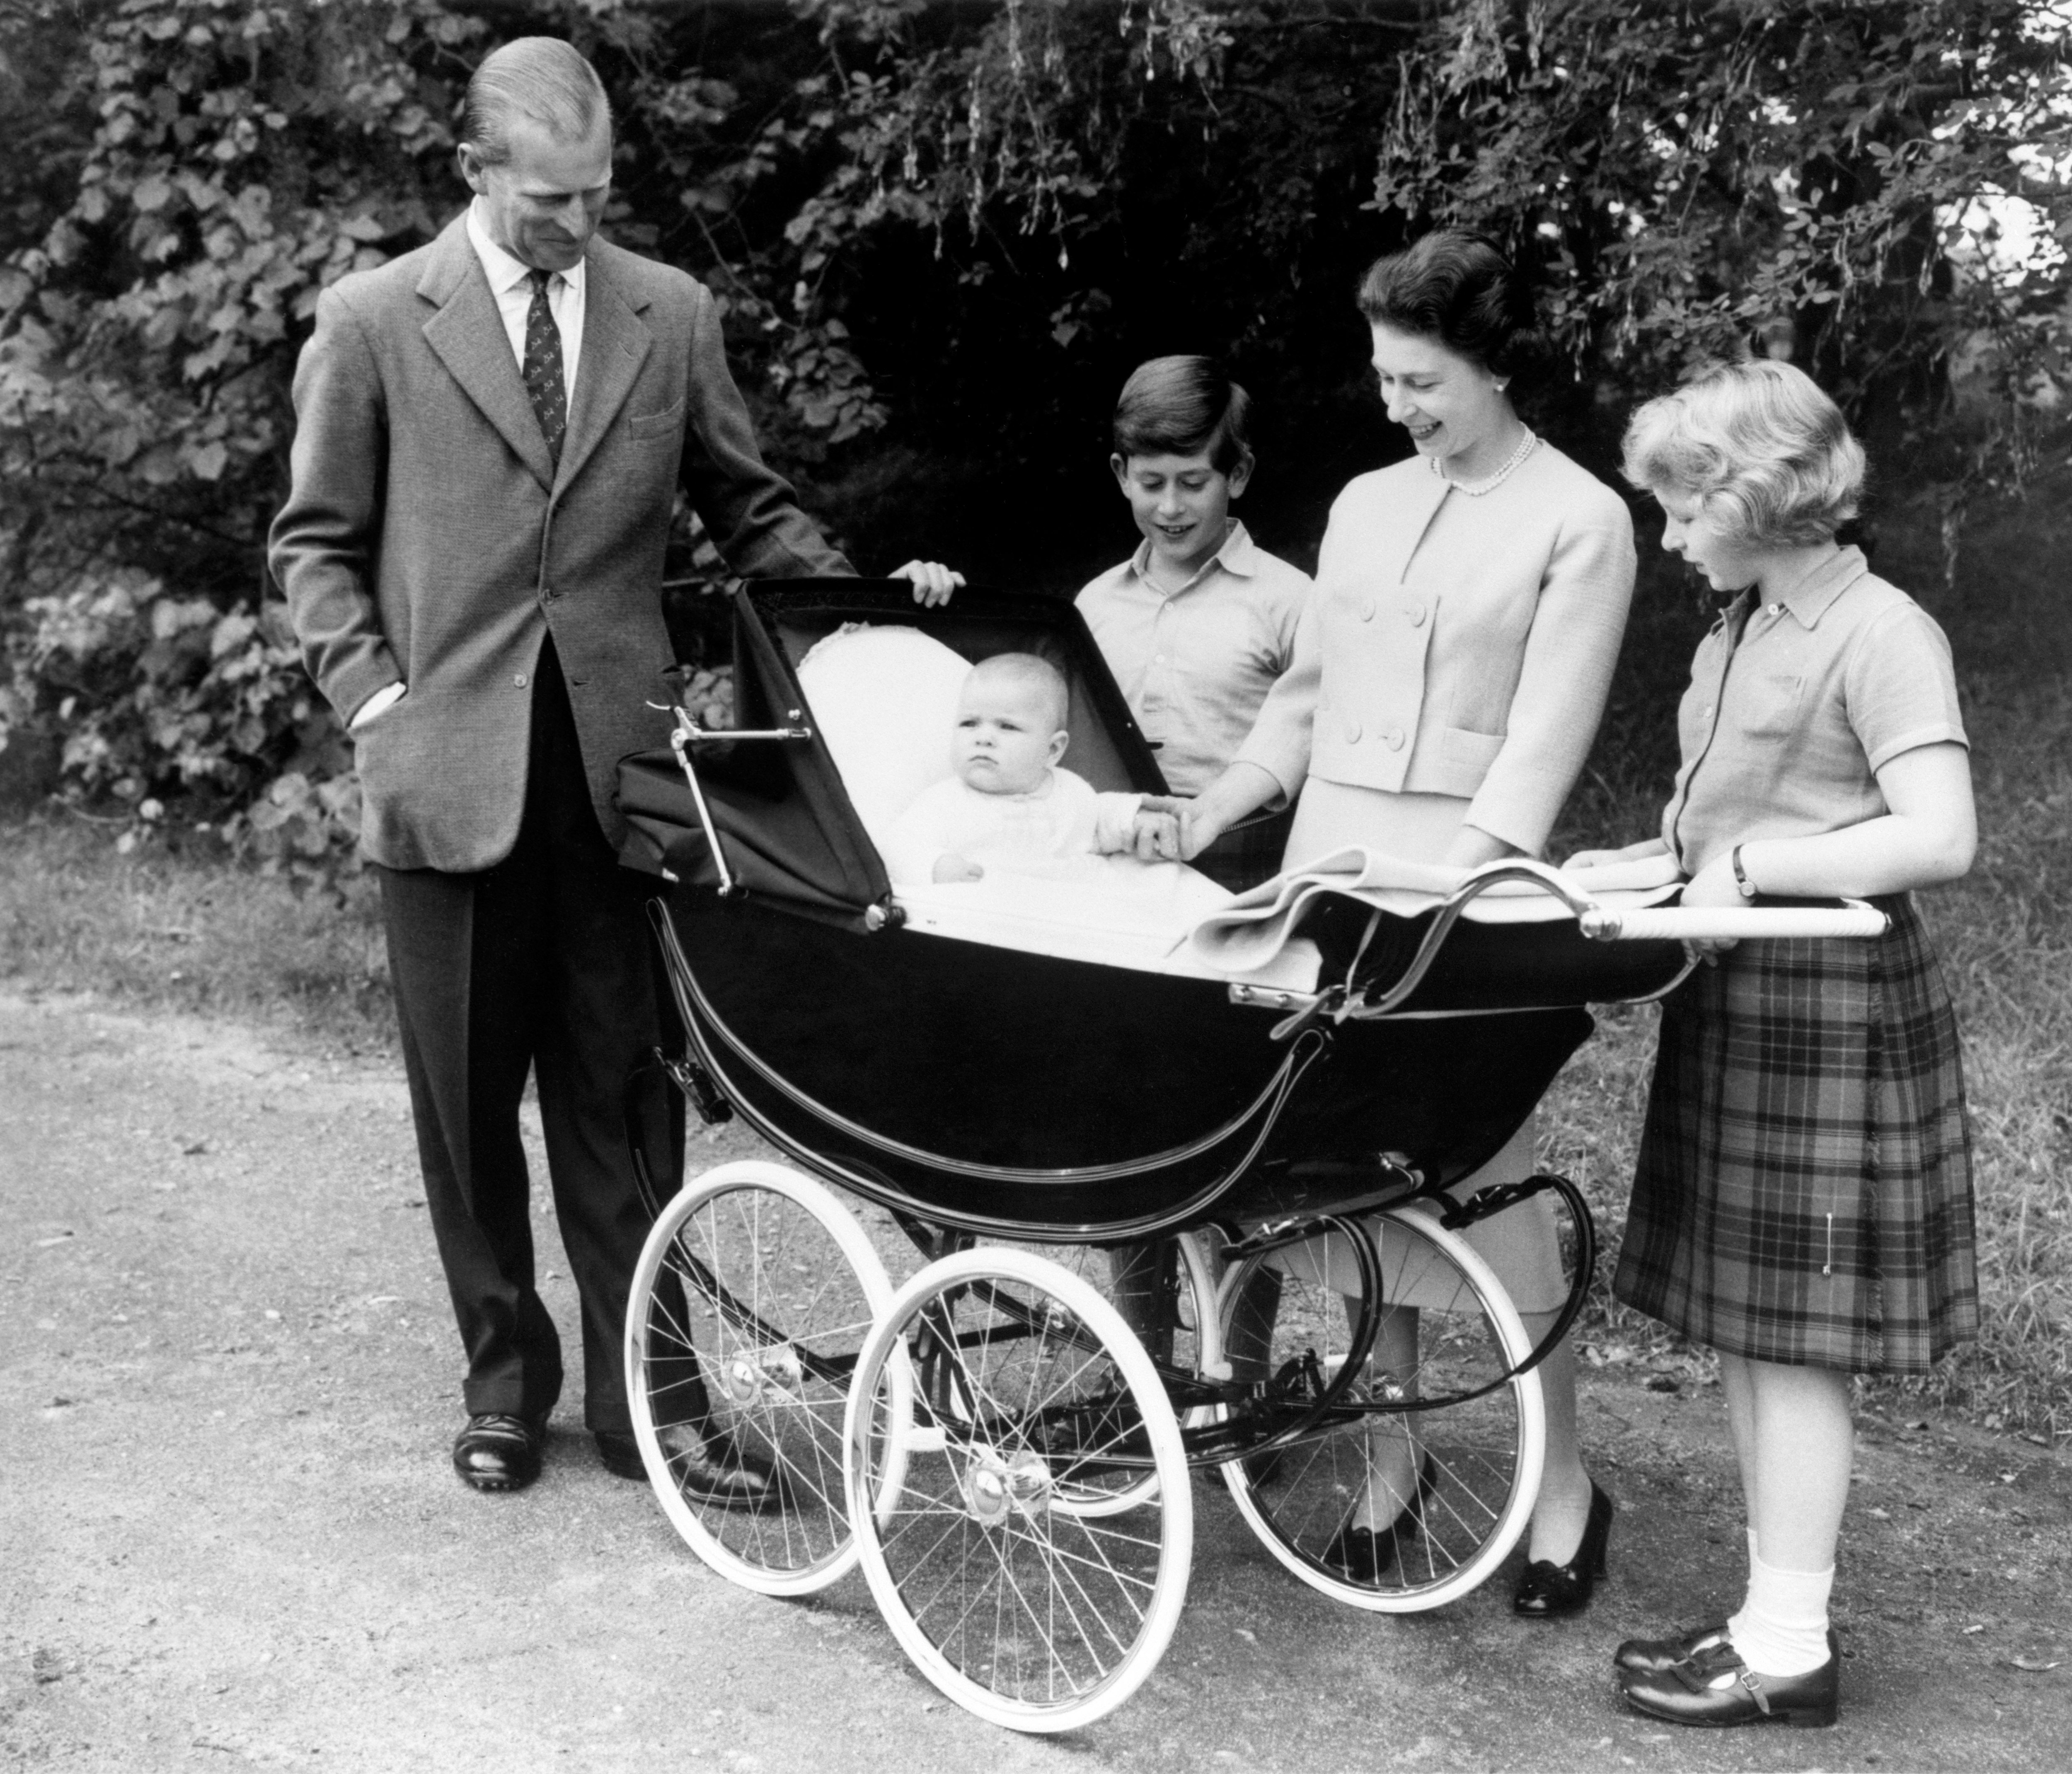 Surrounded by members of the Royal Family, Prince Andrew sits up and takes an interest in the proceedings from the comfort of his pram, in the Balmoral Estate.   (Photo by PA Images via Getty Images)